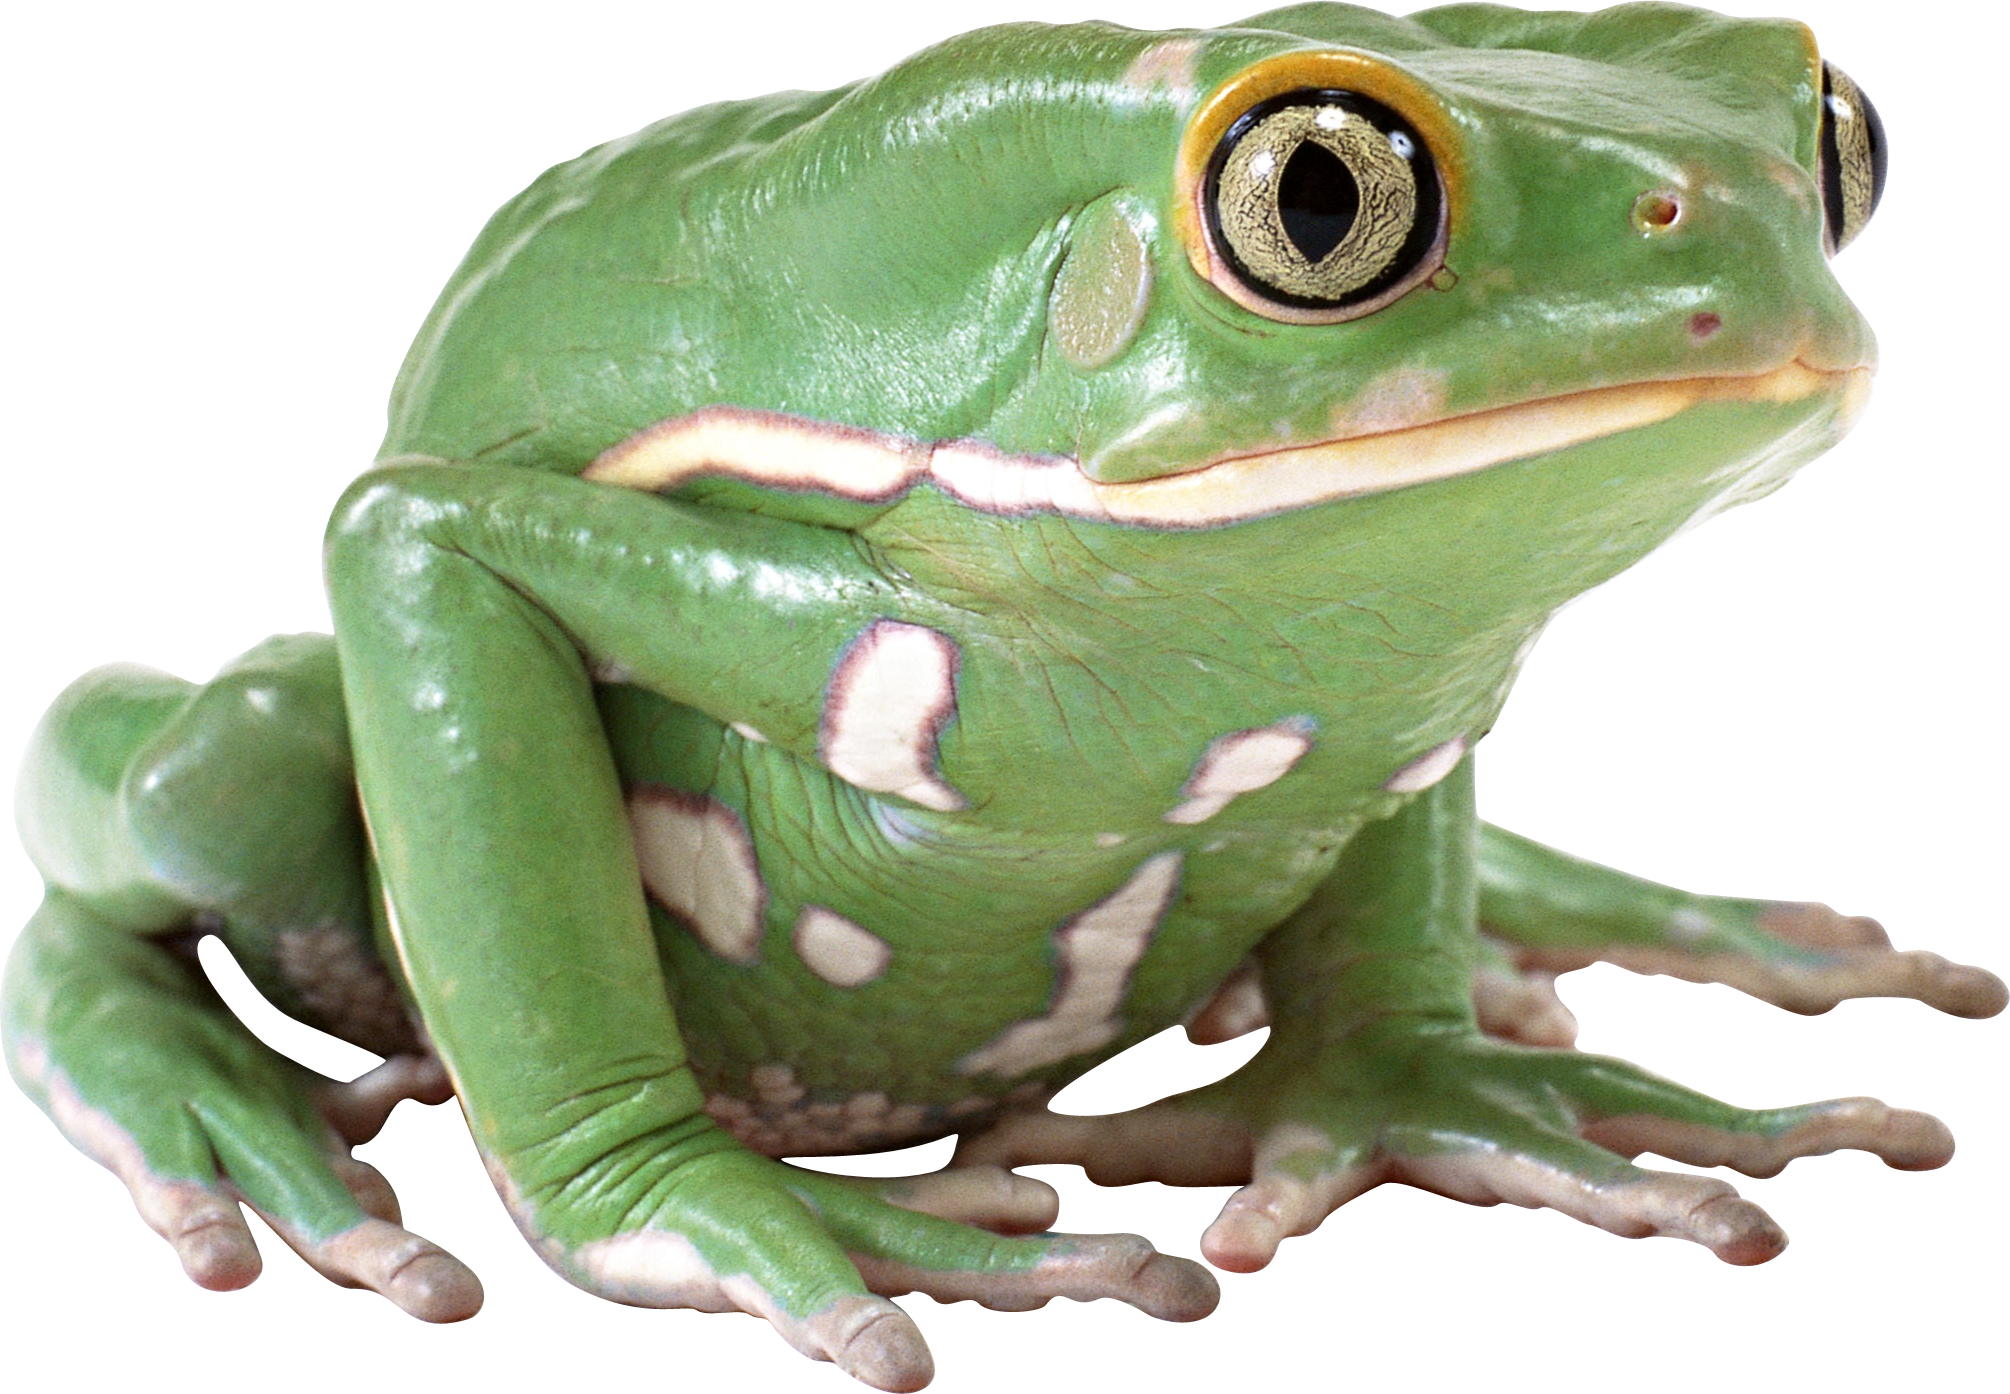 Frog PNG Image Free Download Image, Frogs image #43154